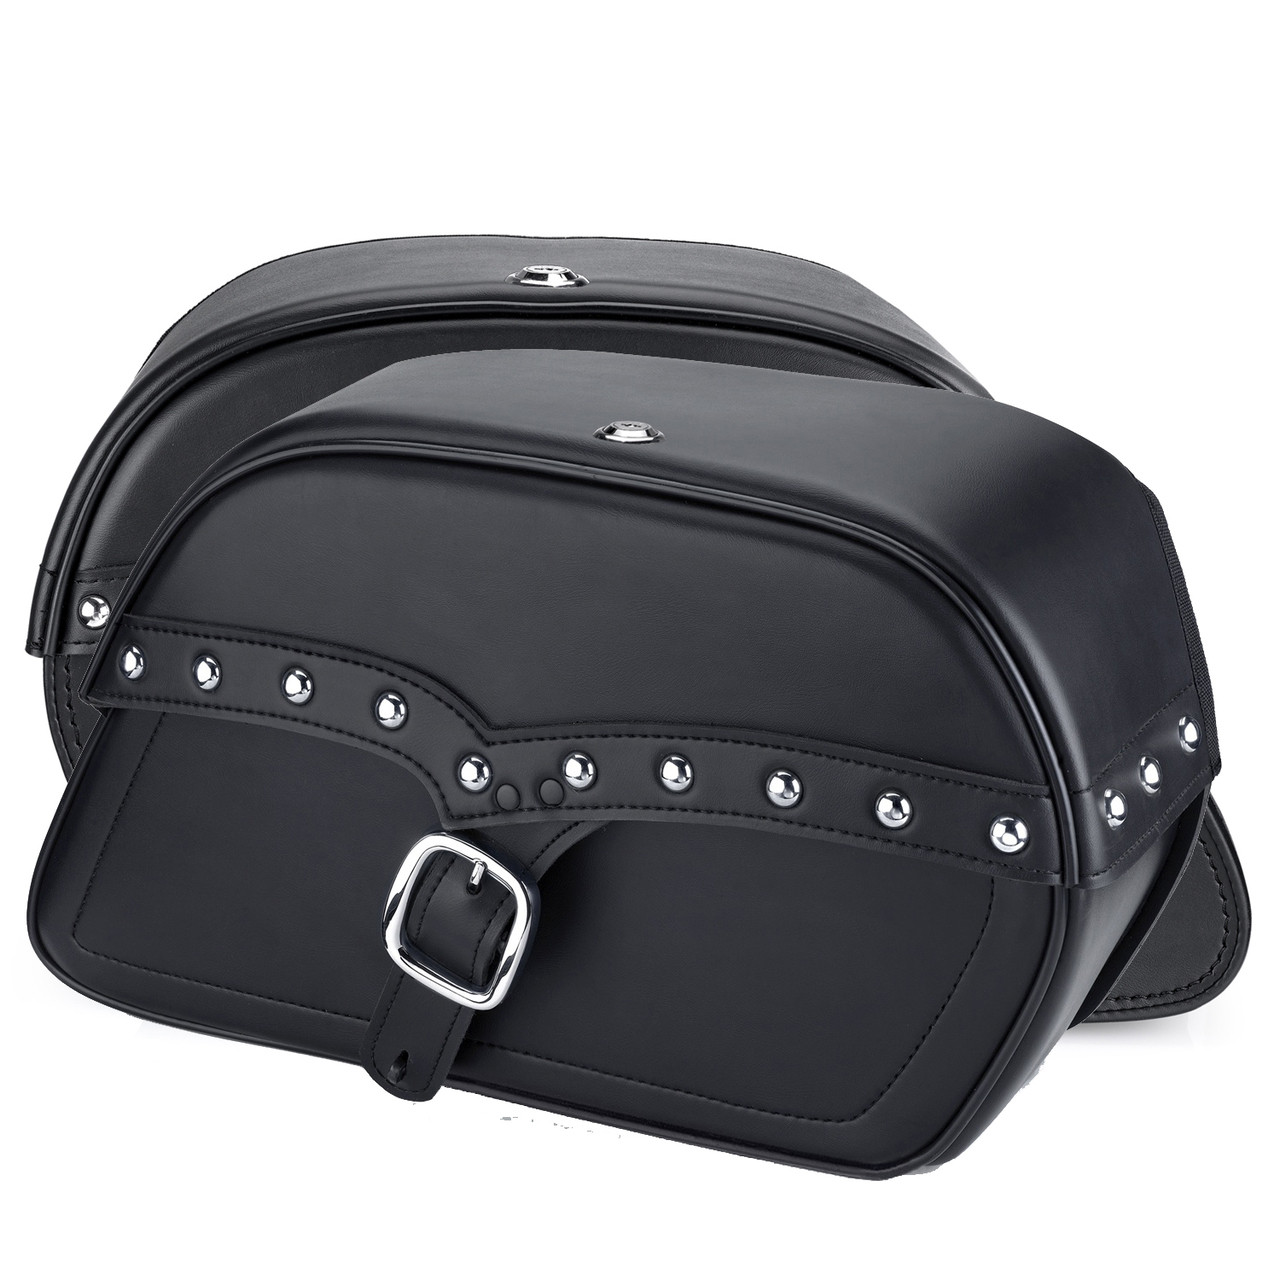 Vikingbags Shock Cutout SS Large Slanted Studded Bags Both Bags View